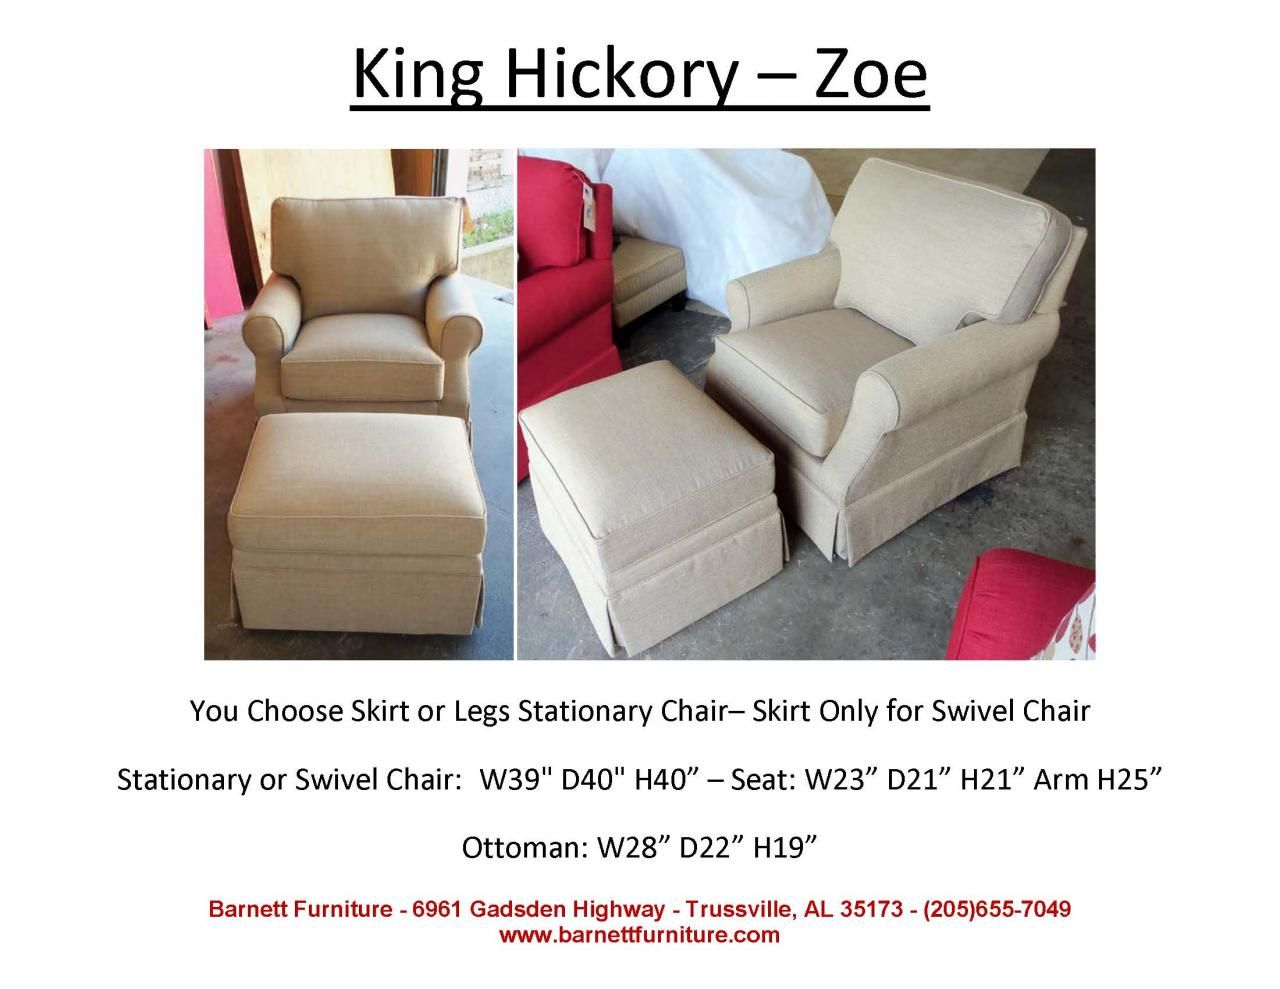 Genial King Hickory Zoe   Swivel Or Stationary. You Choose The Fabric